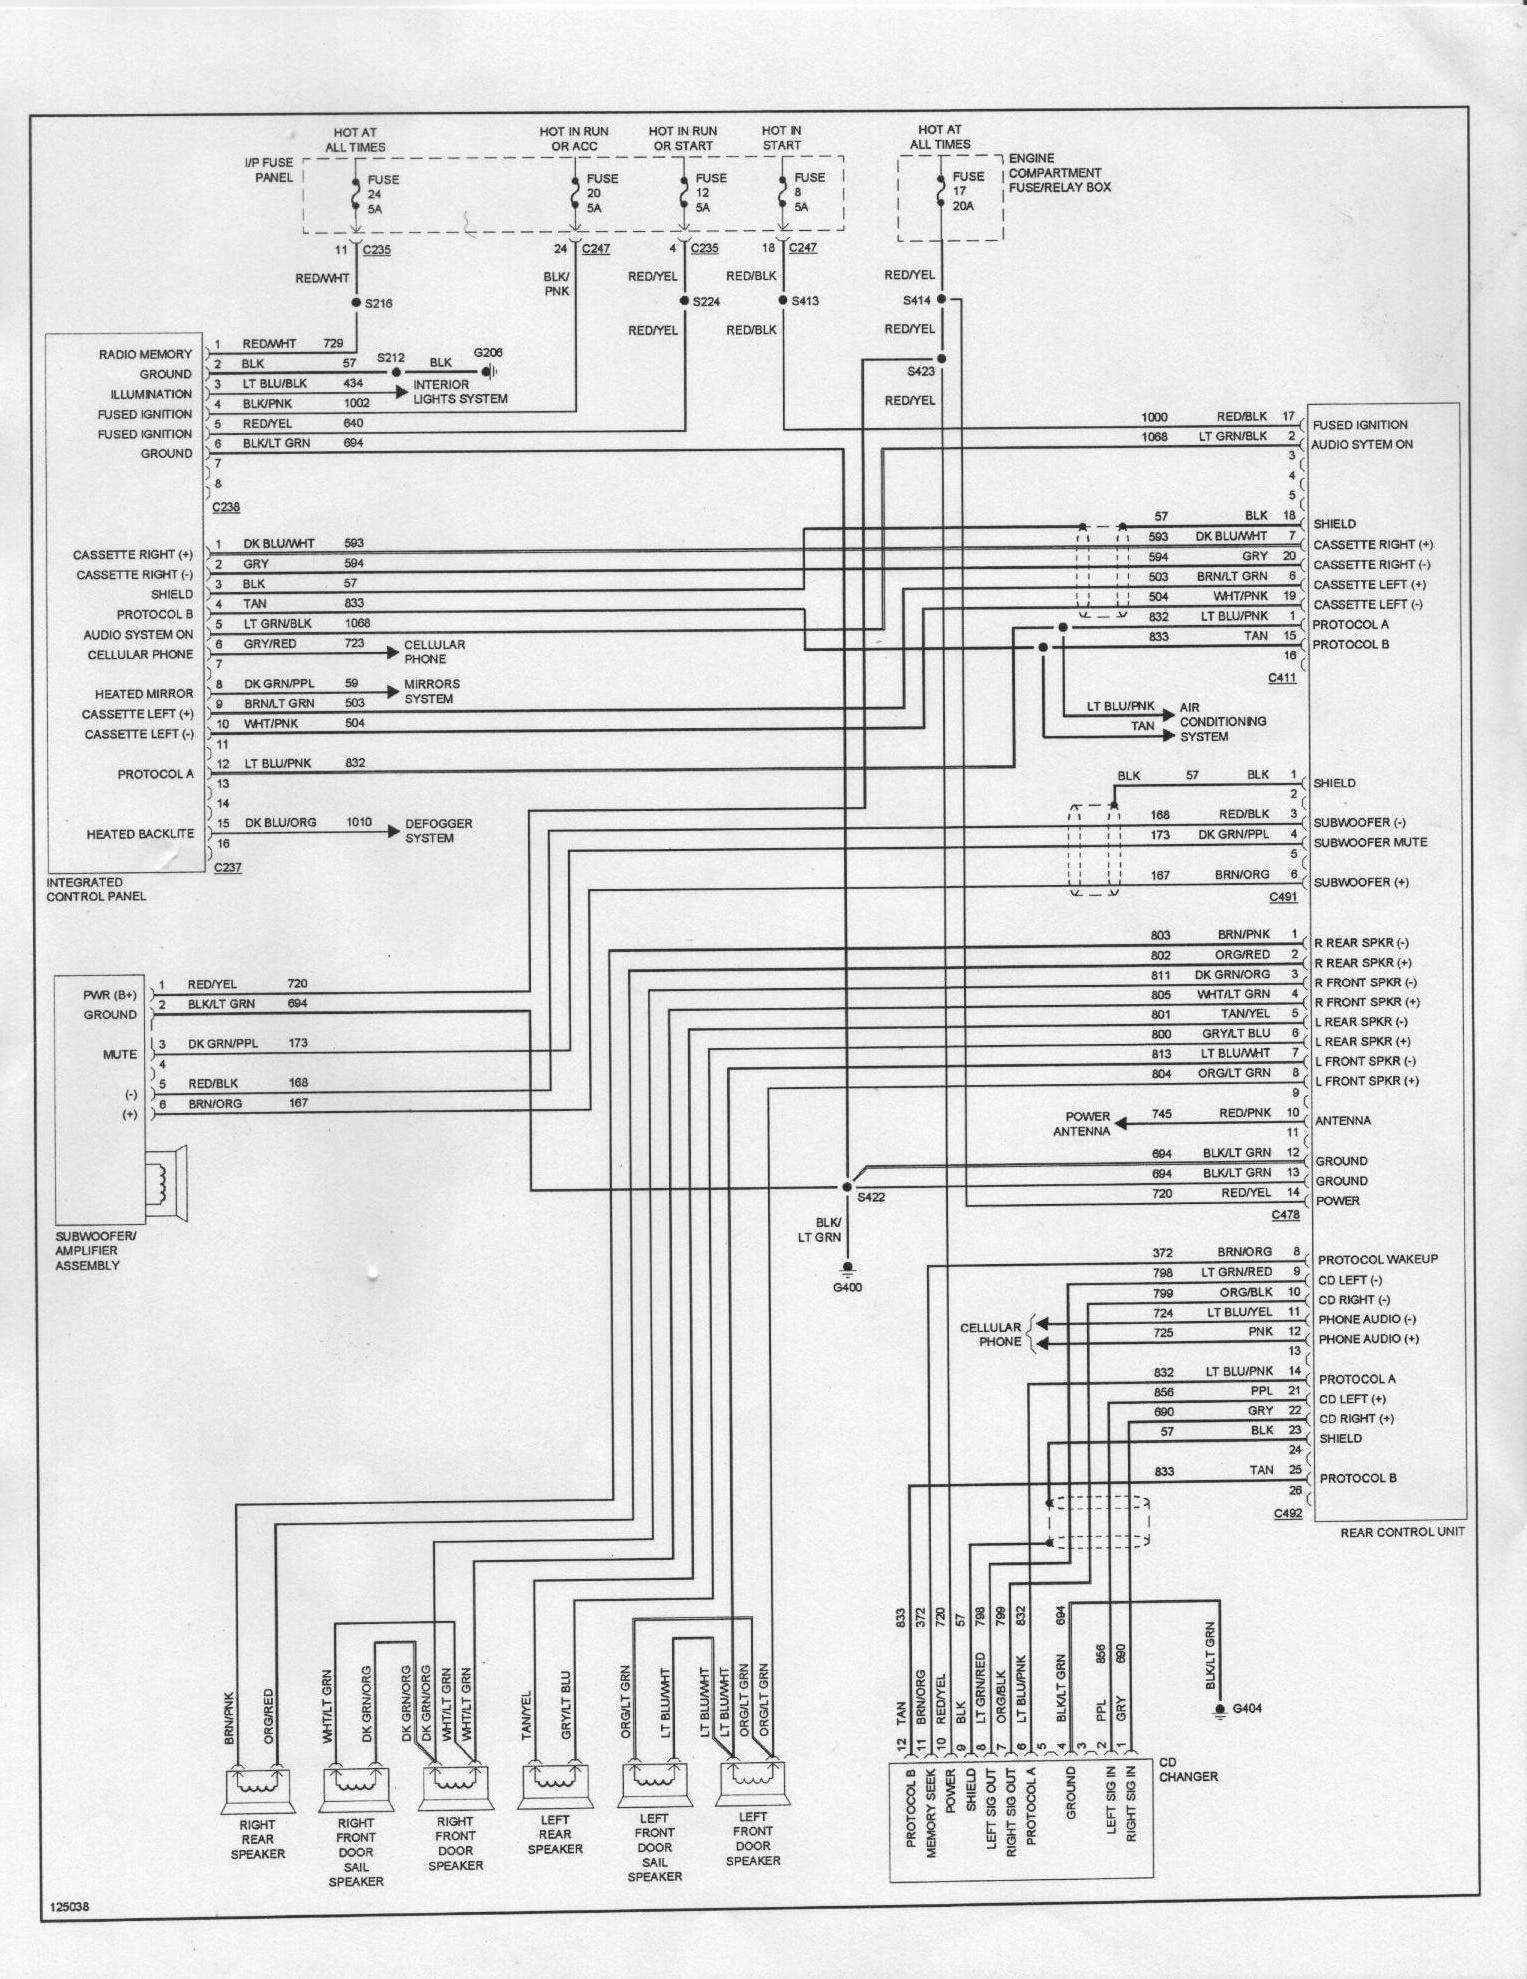 2000 ford excursion radio wiring diagram 2005 ford taurus stereo wiring diagram 2005 ford taurus stereo 2000 ford taurus system wiring diagrams